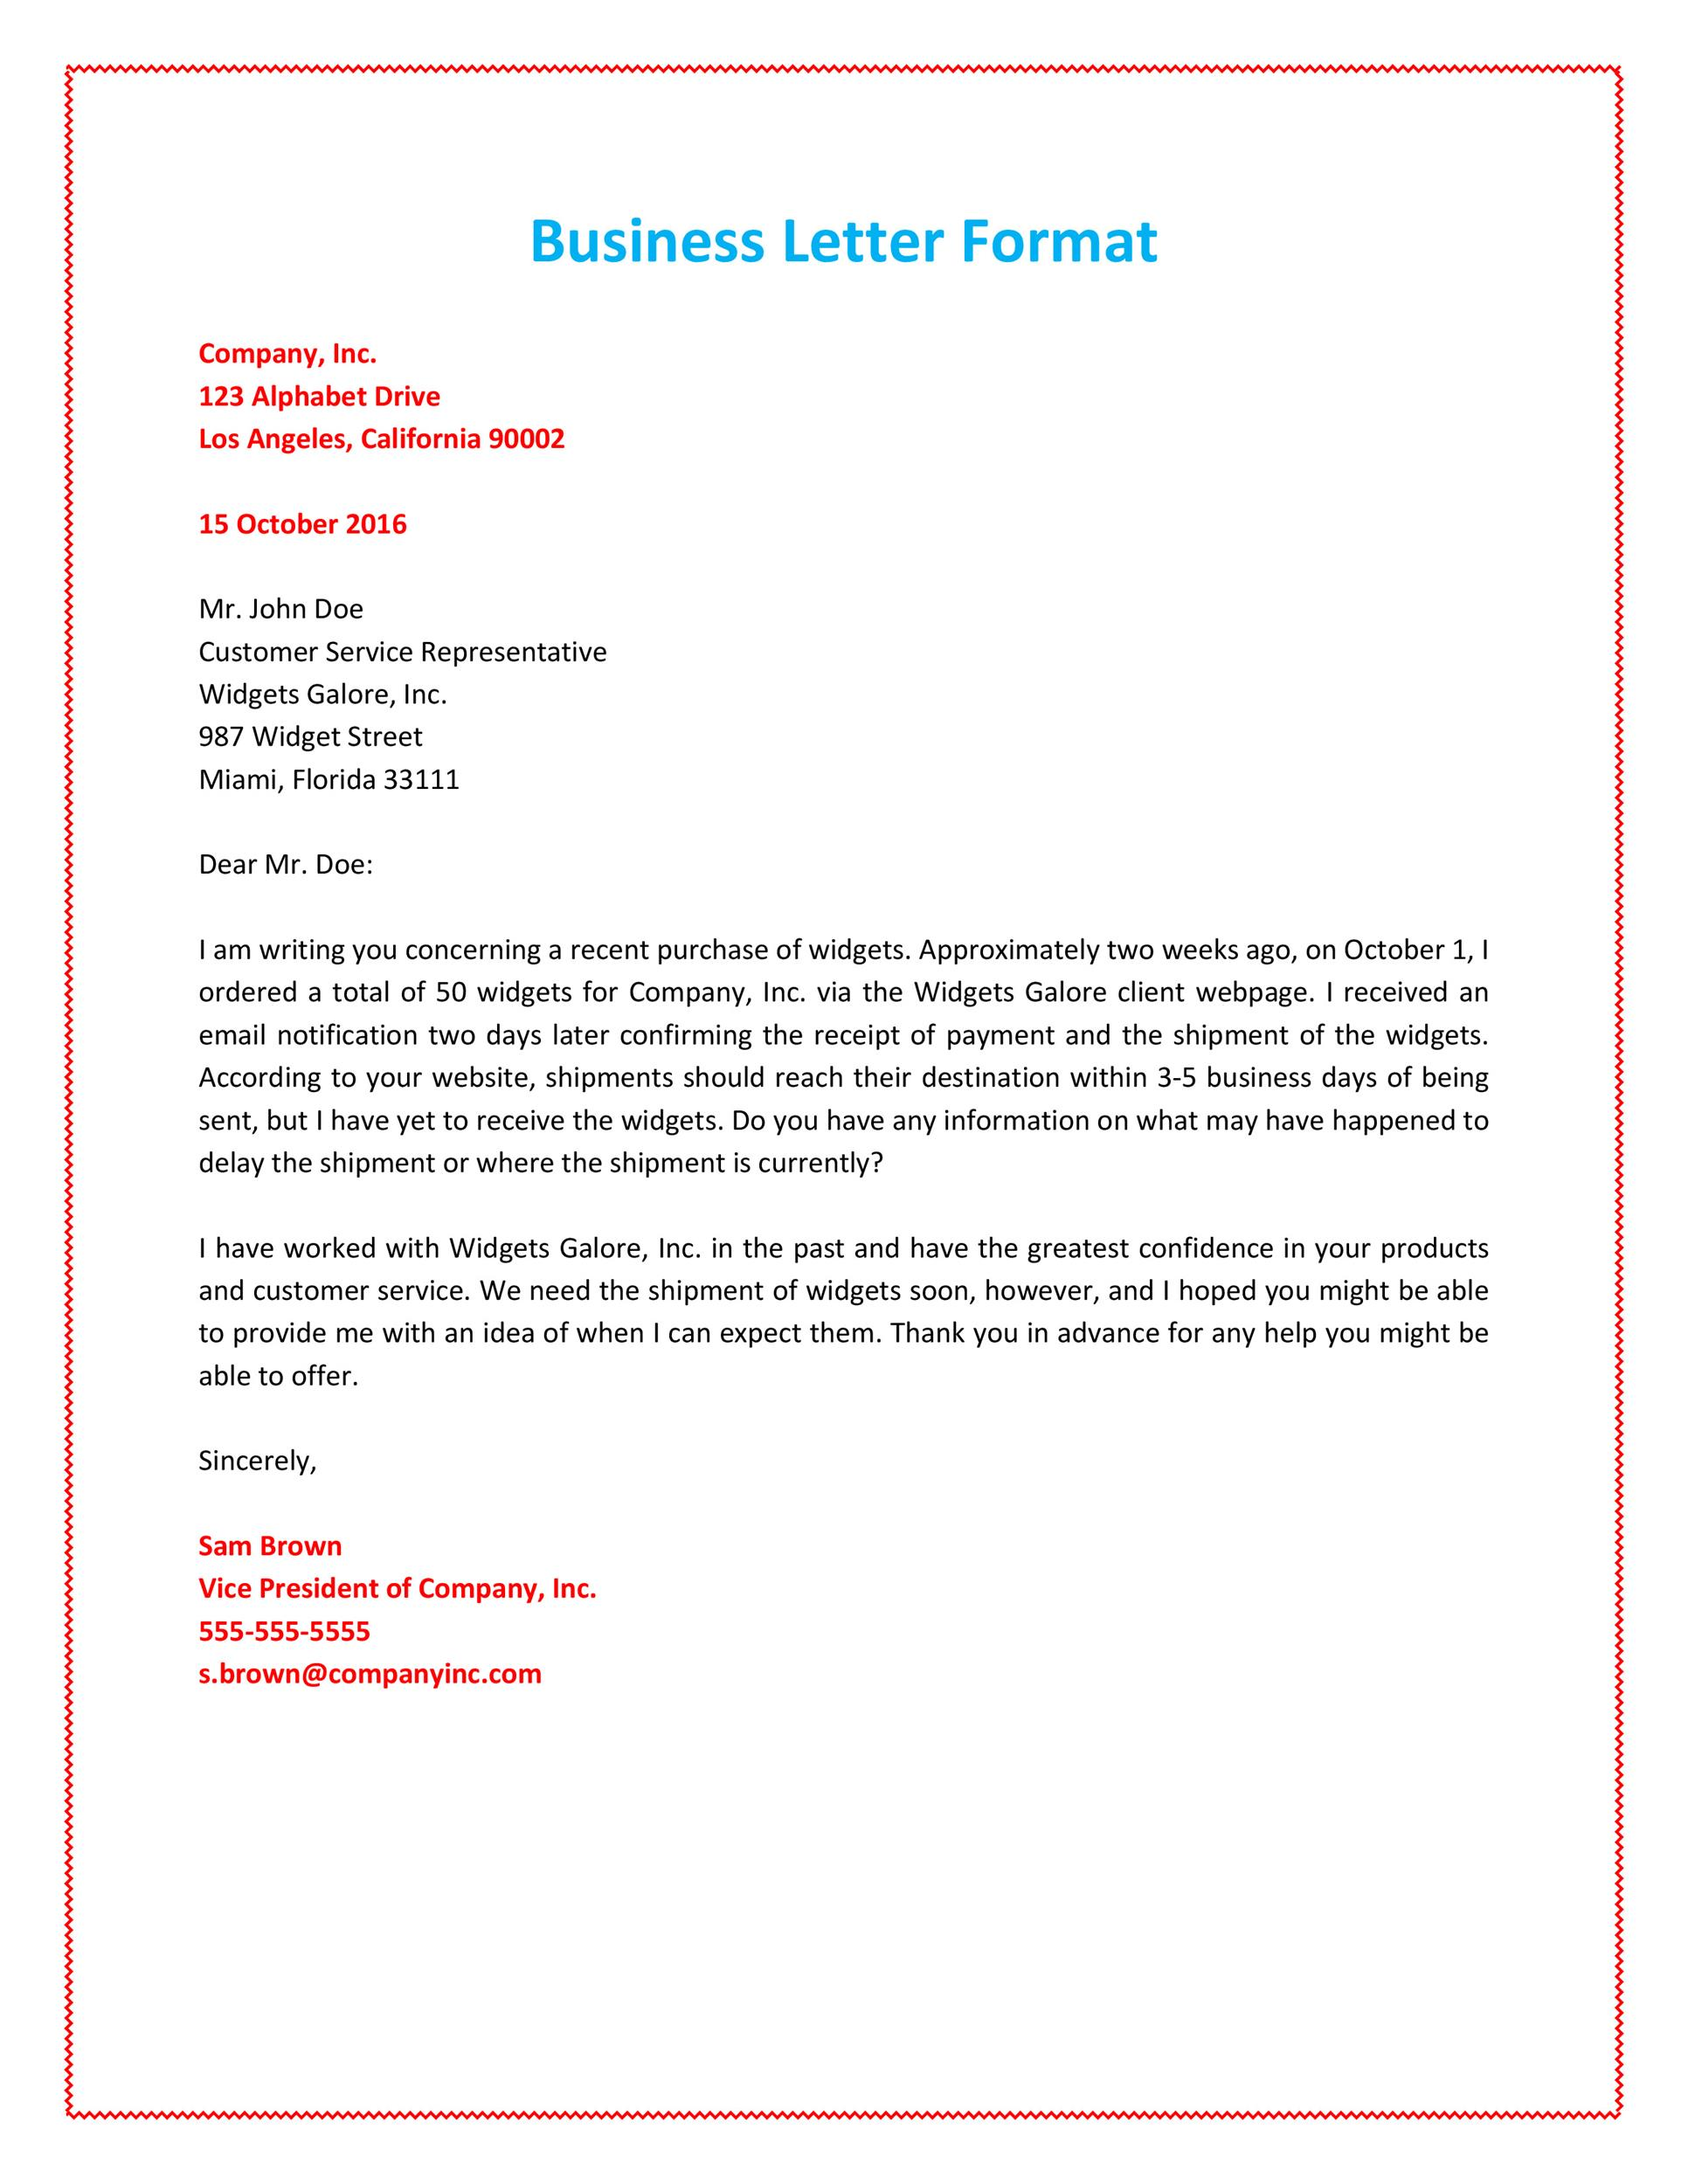 Formats Of Business Letter from templatelab.com